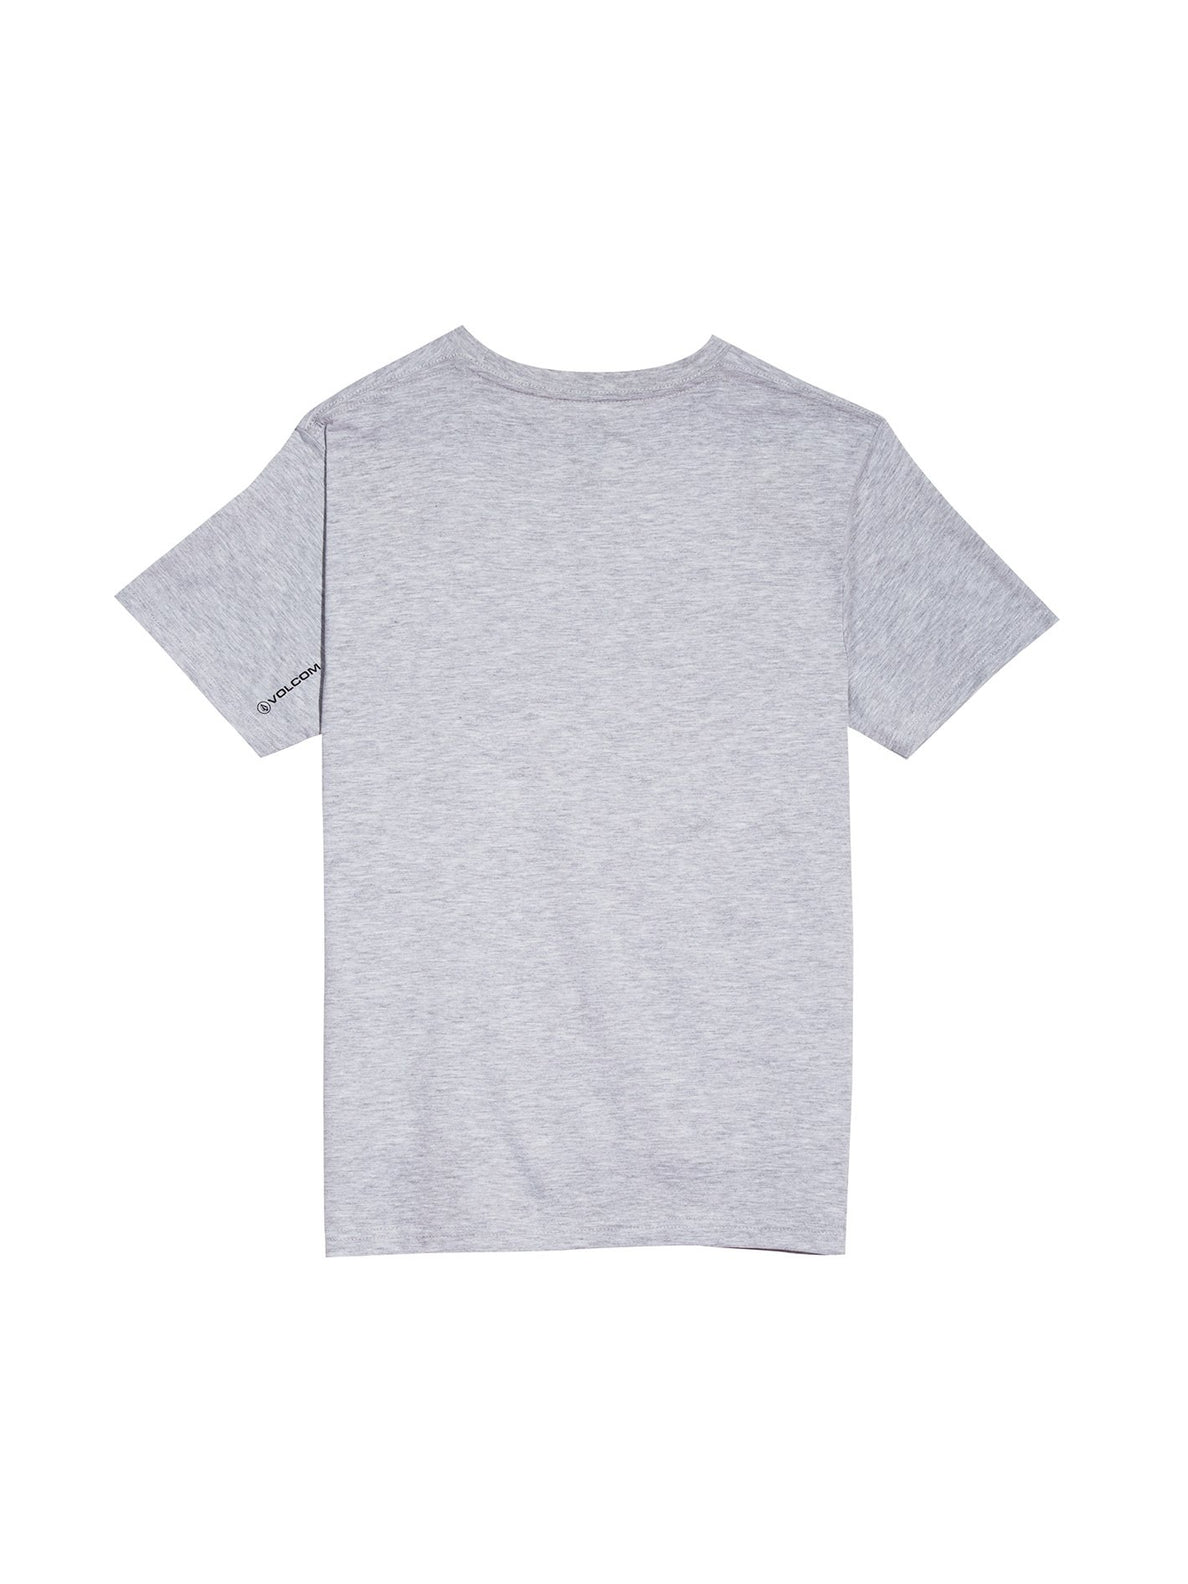 Comes Around Tee - Heather Grey (Niňo)